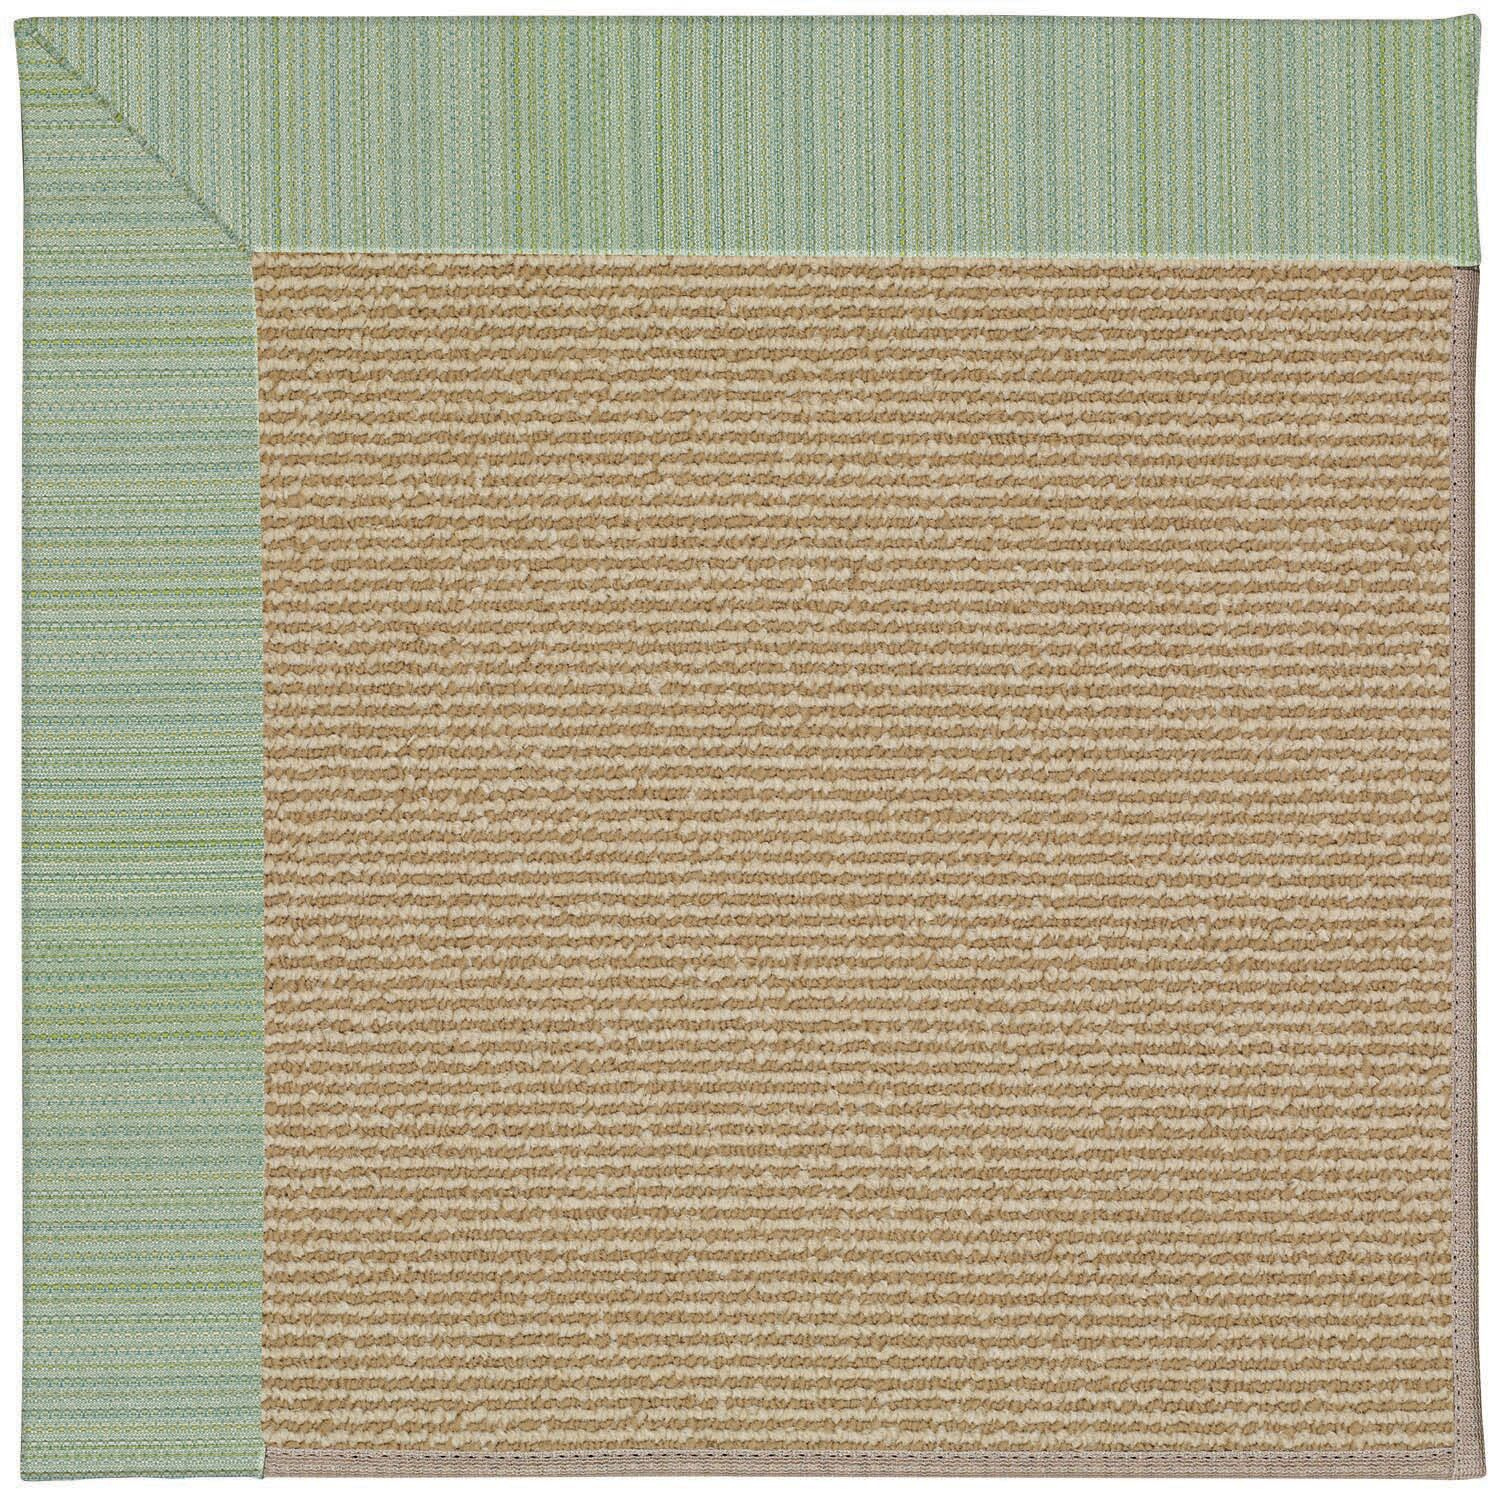 Lisle Machine Tufted Green Spa and Beige Indoor/Outdoor Area Rug Rug Size: Round 12' x 12'